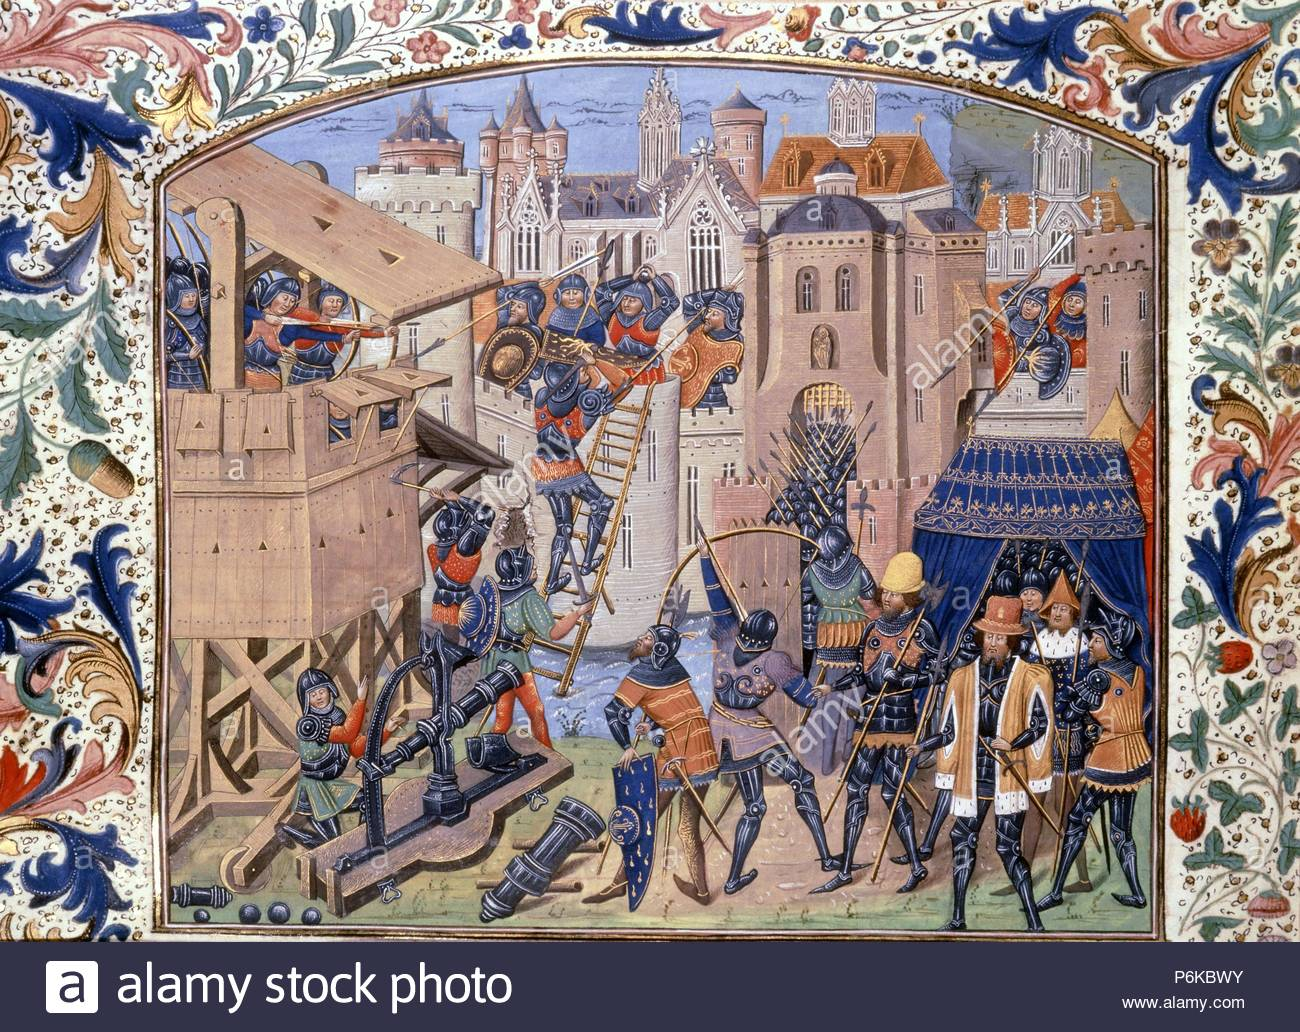 Hundred Years War between France and England 1339-1453, Siege of Ribodane with cannon and Longbow from Chronicles of England by Jean de Wavrin, 14-1500. Artwork also known as: CHRONIQUE D'ANGLETERRE. Museum: BRITISH LIBRARY. - Stock Image